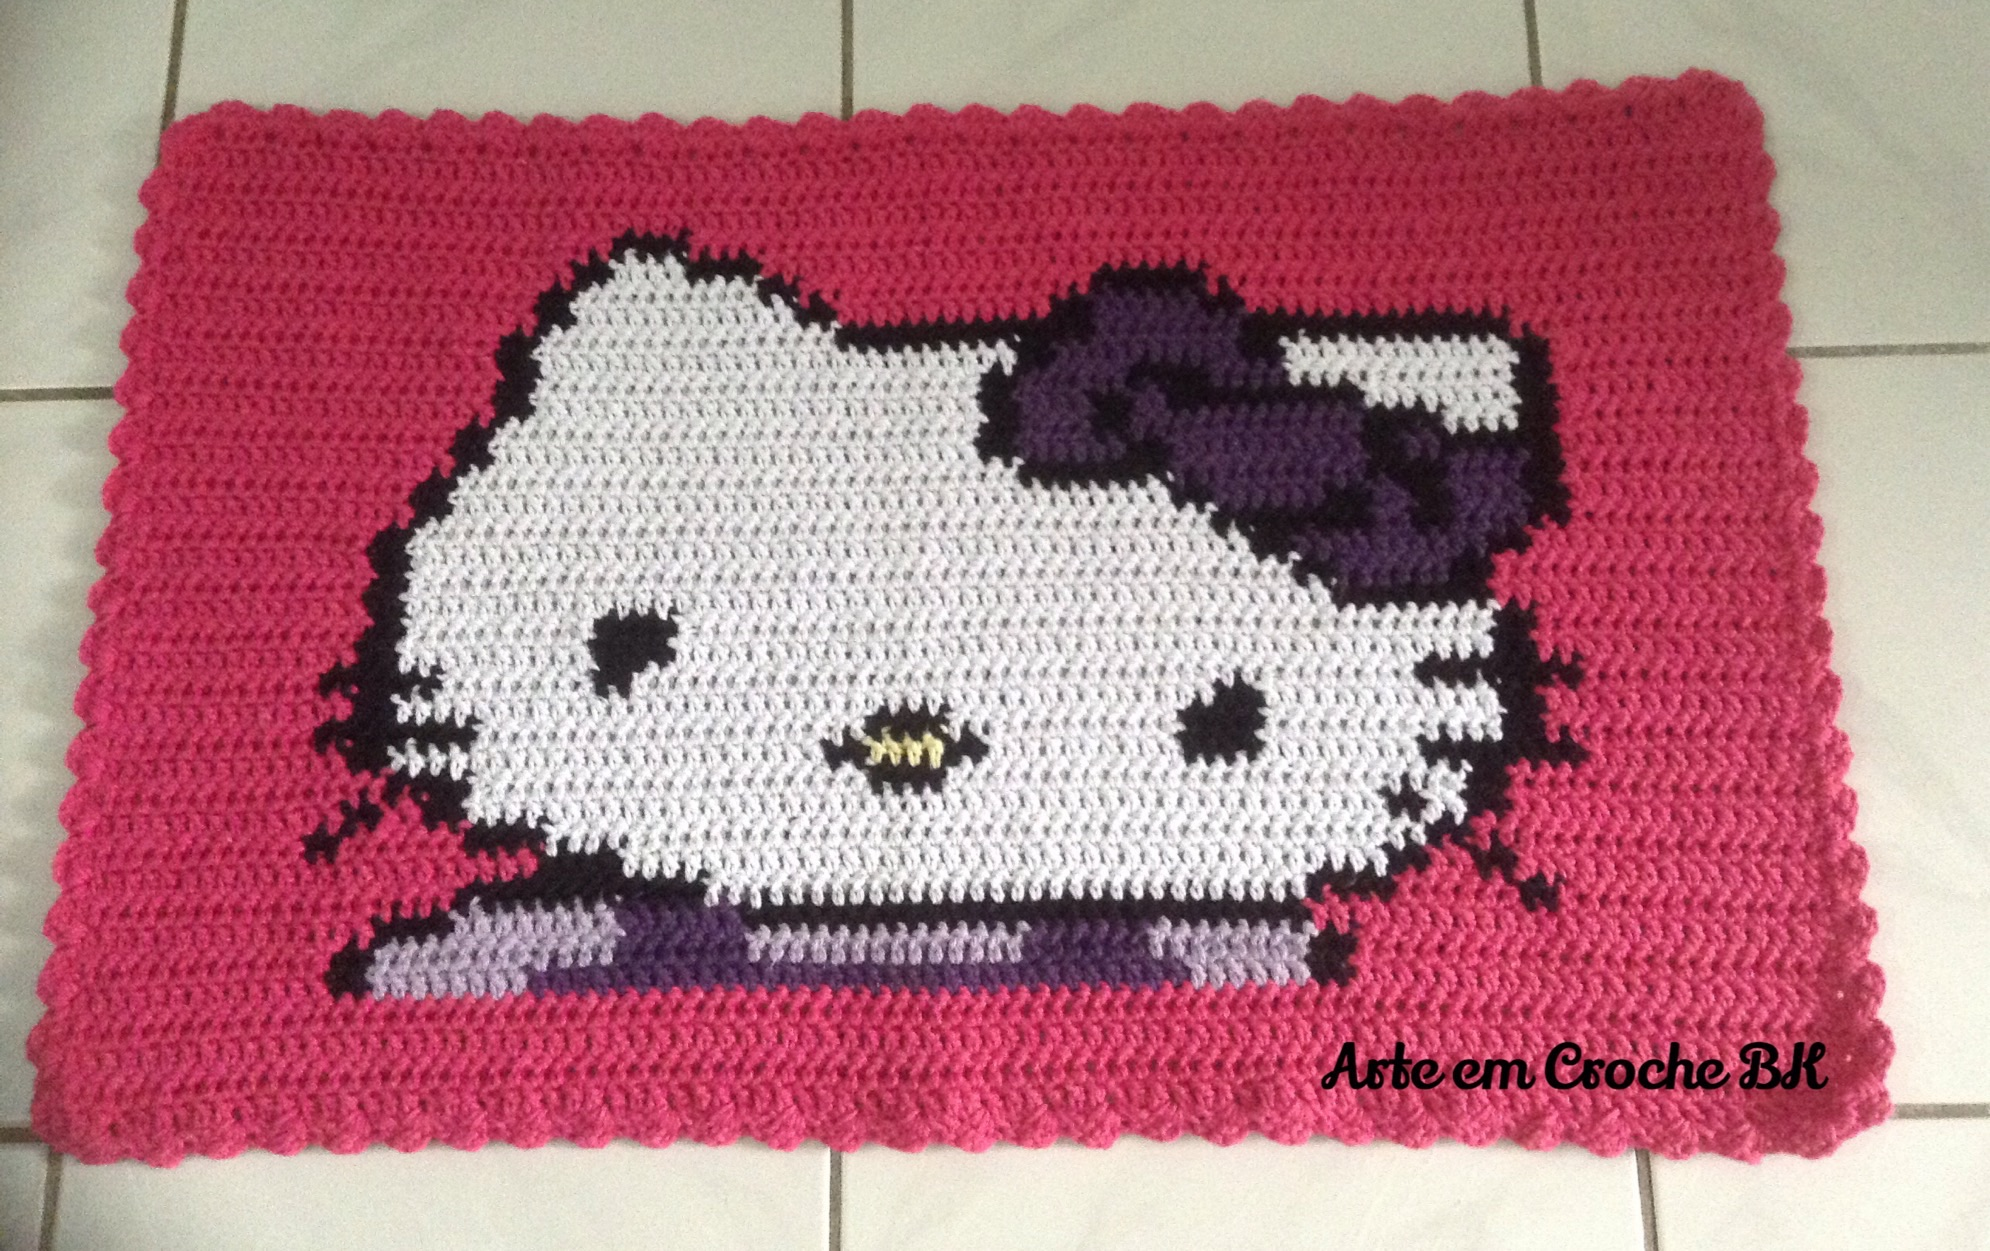 Tapete Croche Hello Kitty ARTE EM CROCHE BK Elo7 ~ Tapetes Quarto Hello Kitty